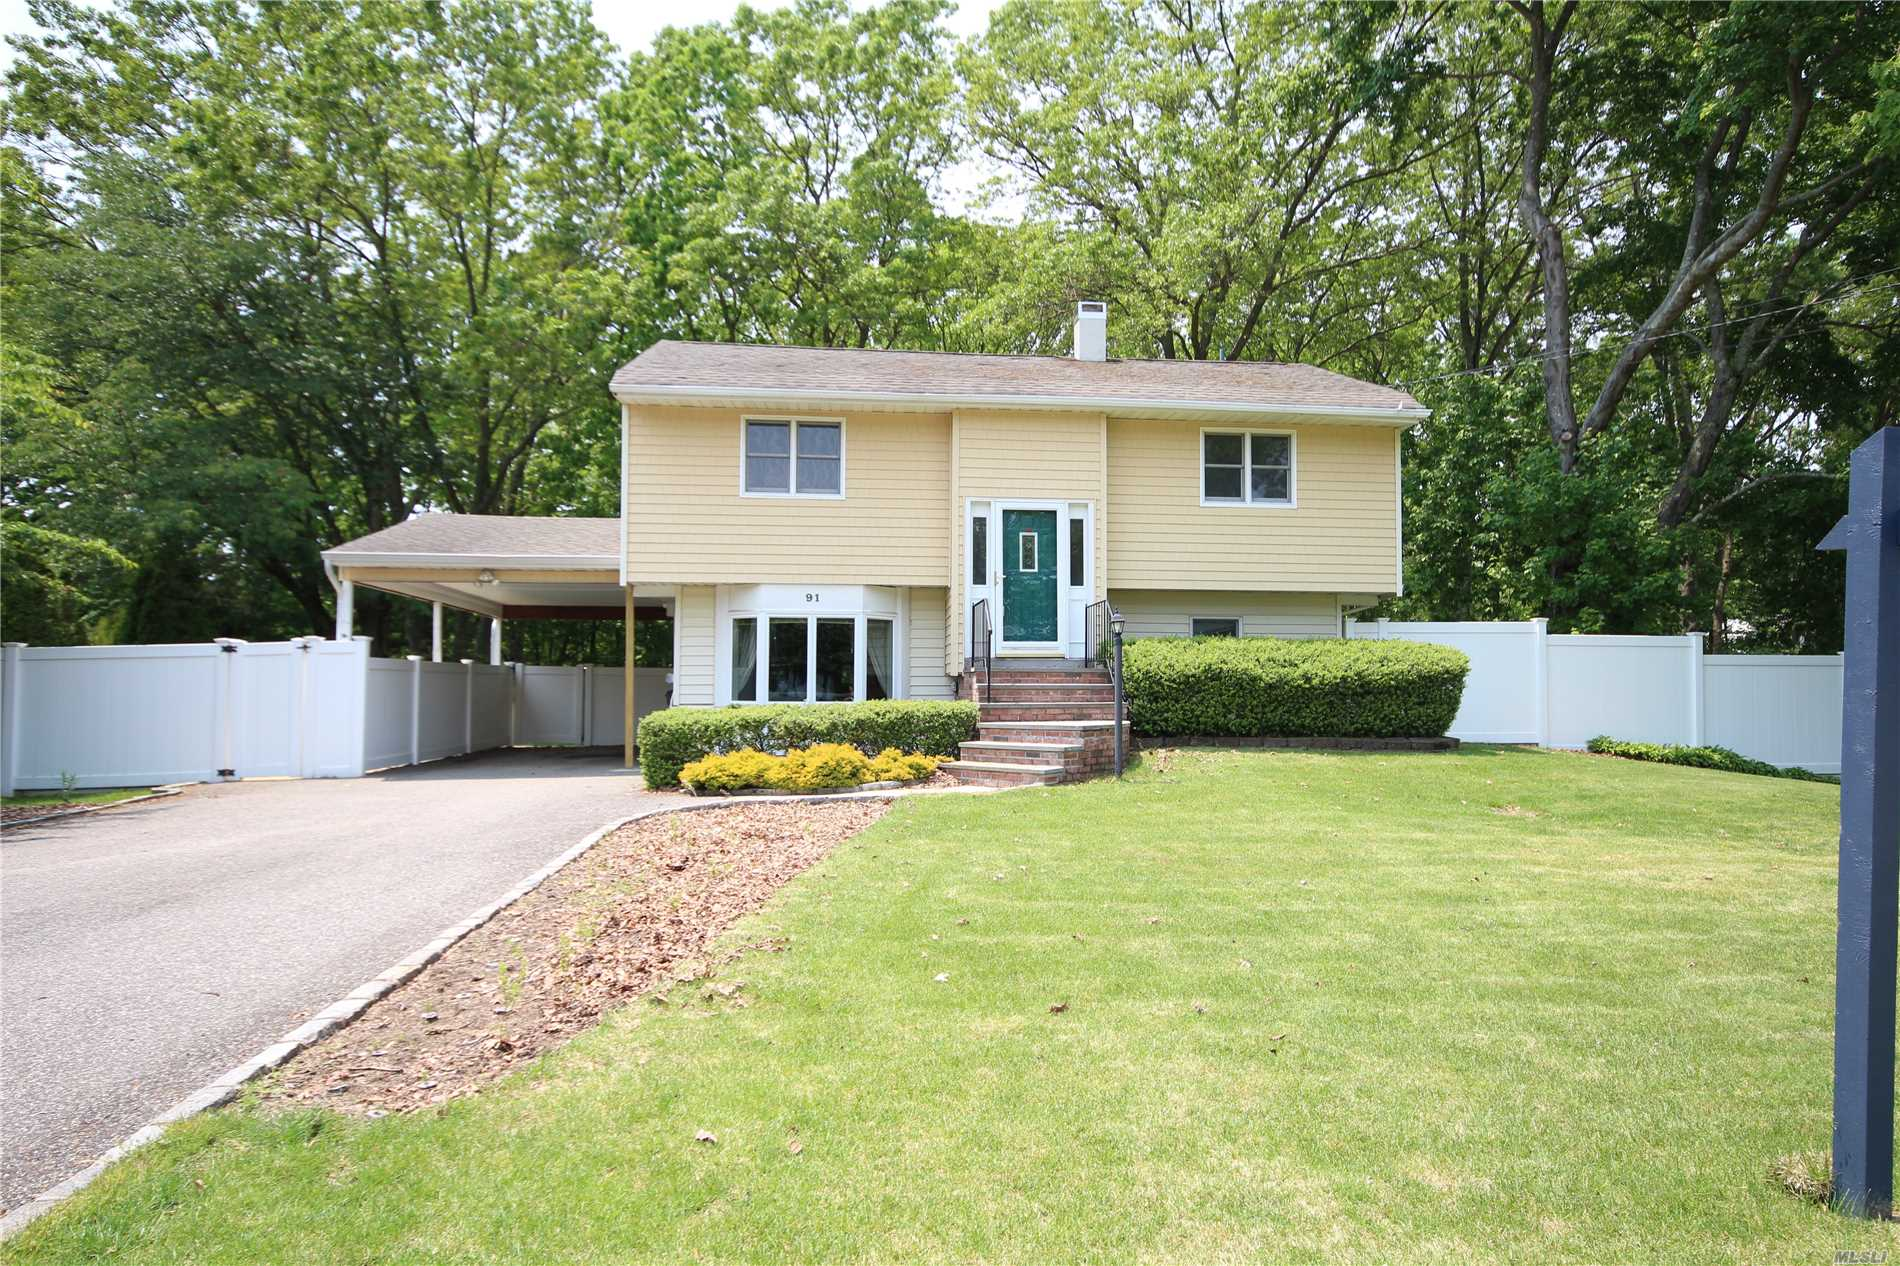 Beautiful Hi-Ranch in Three Village Schools! , New 100 Amp Electric, Freshly Painted, Updated roof, Siding, heating, 3 Nice Sized Bedrooms(1 with a full Bathroom), 1Add'l Full Bathroom, Eat-in Kitchen, Family Room, Wonderful Back yard with multi-level decking, great for entertainin! Fabulous location near Golf, Bear Ln Park, shopping, Stony Brook University, restaurants, & so much more!Solar Panels on Roof are not included